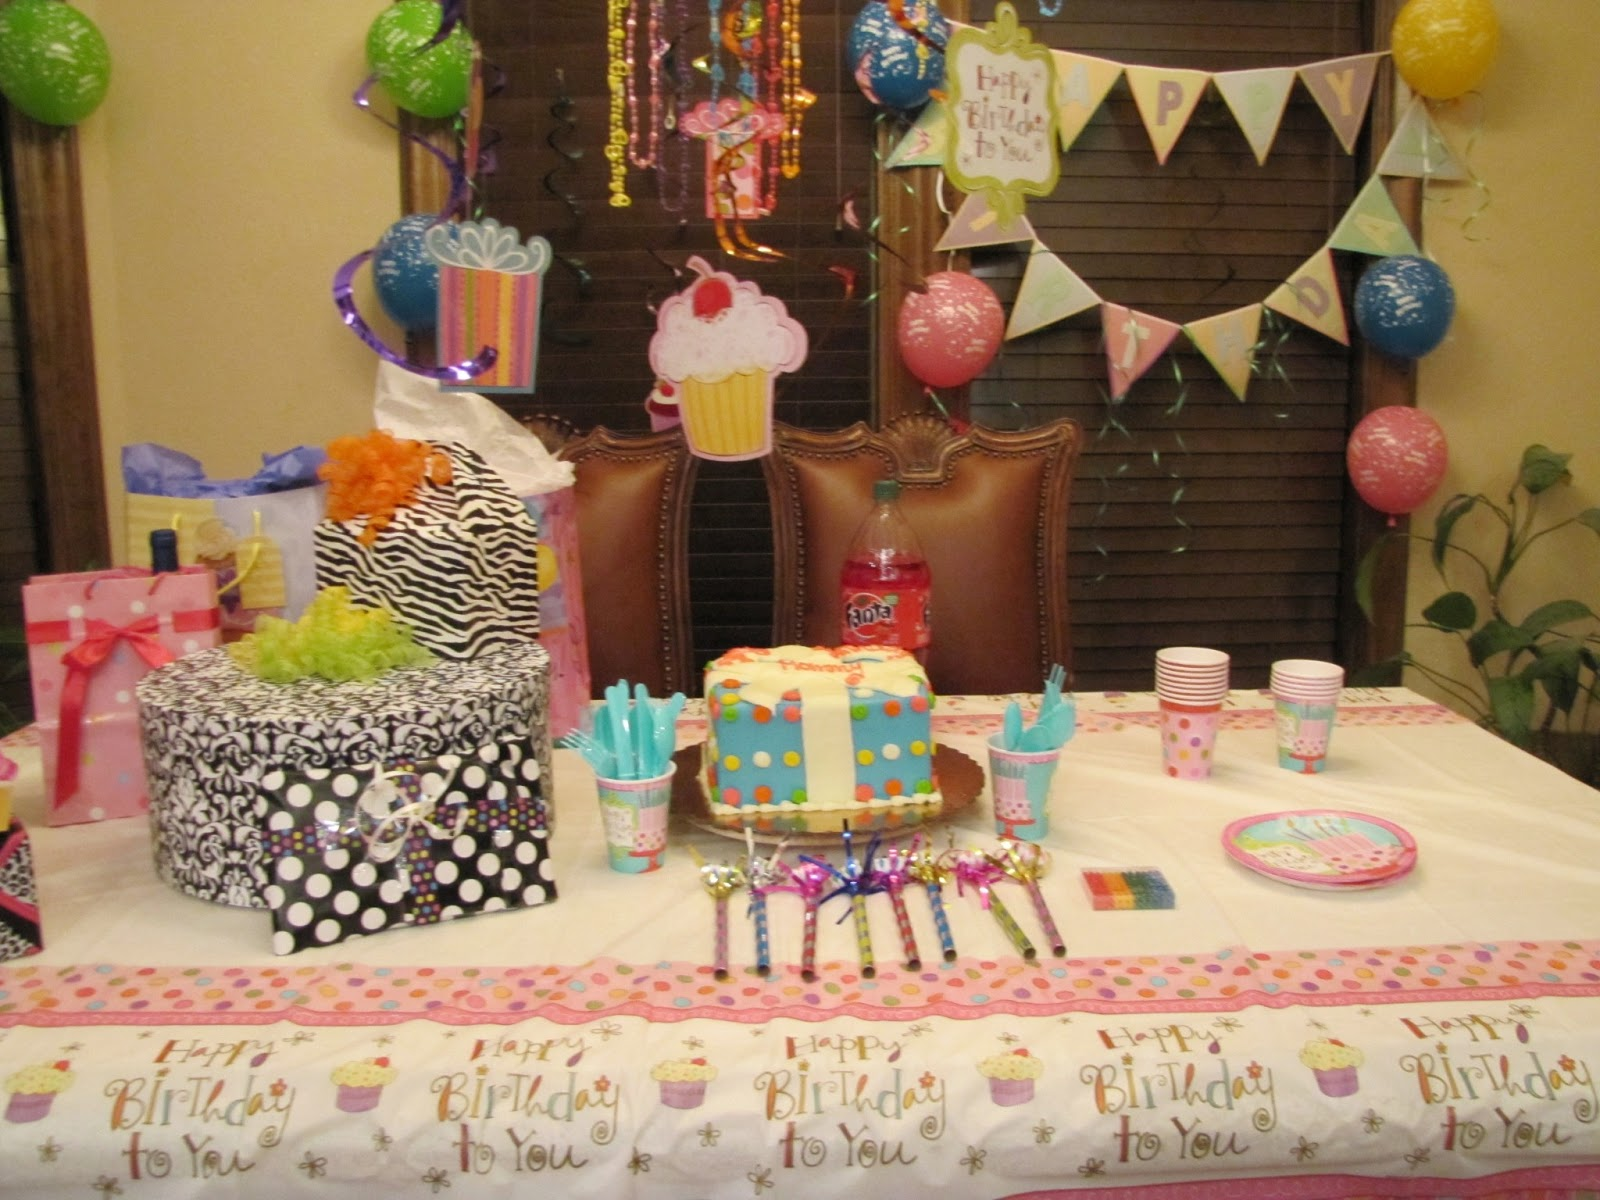 Some Great Tips on Birthday Decoration Ideas for Husband at Home